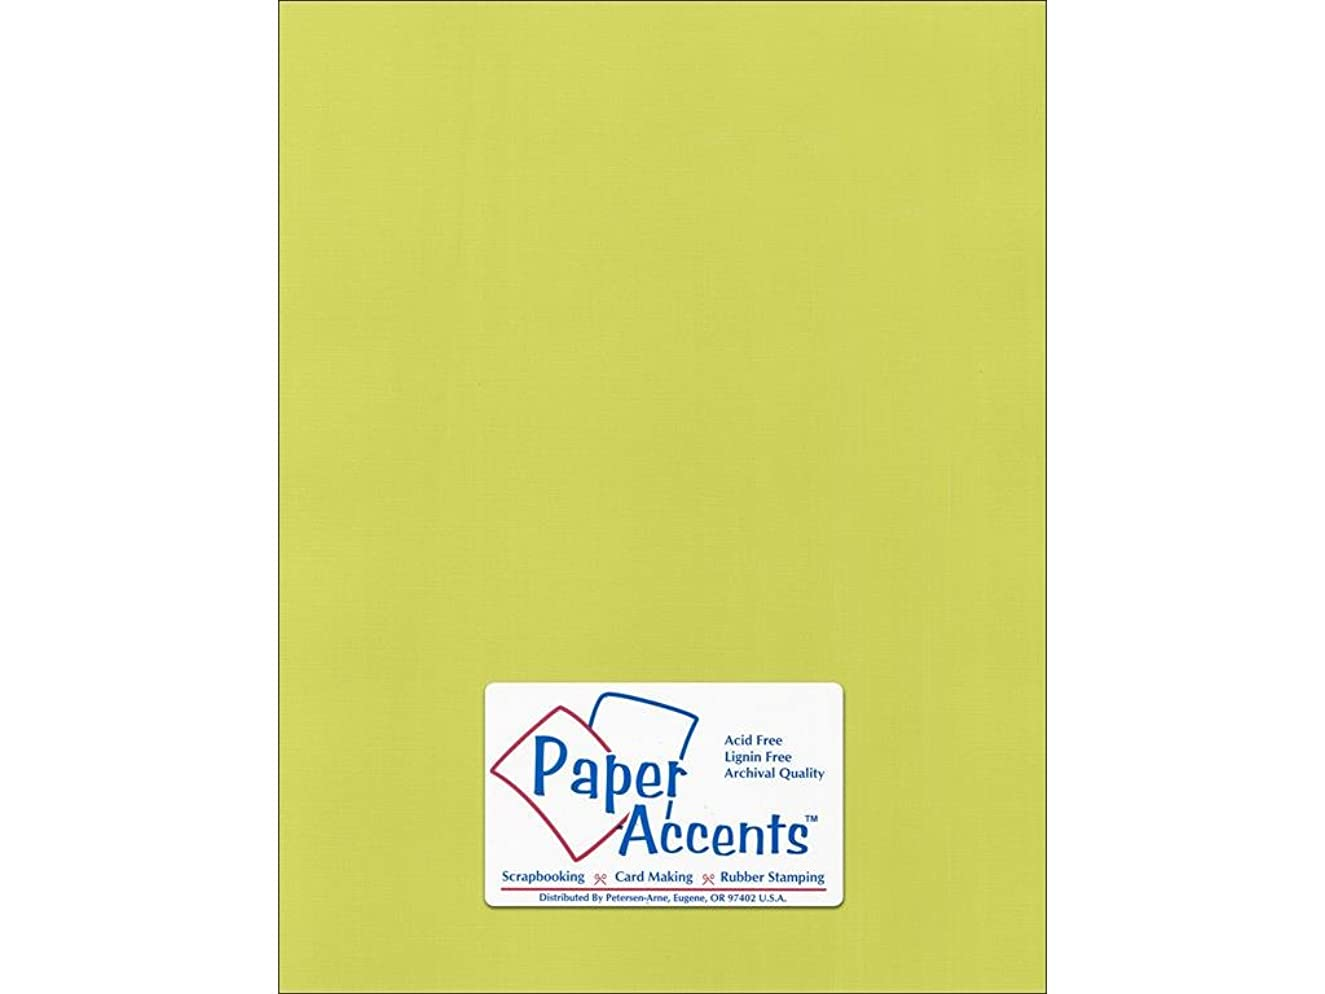 Accent Design Paper Accents Cdstk Canvas 8.5x11 80# Limelight